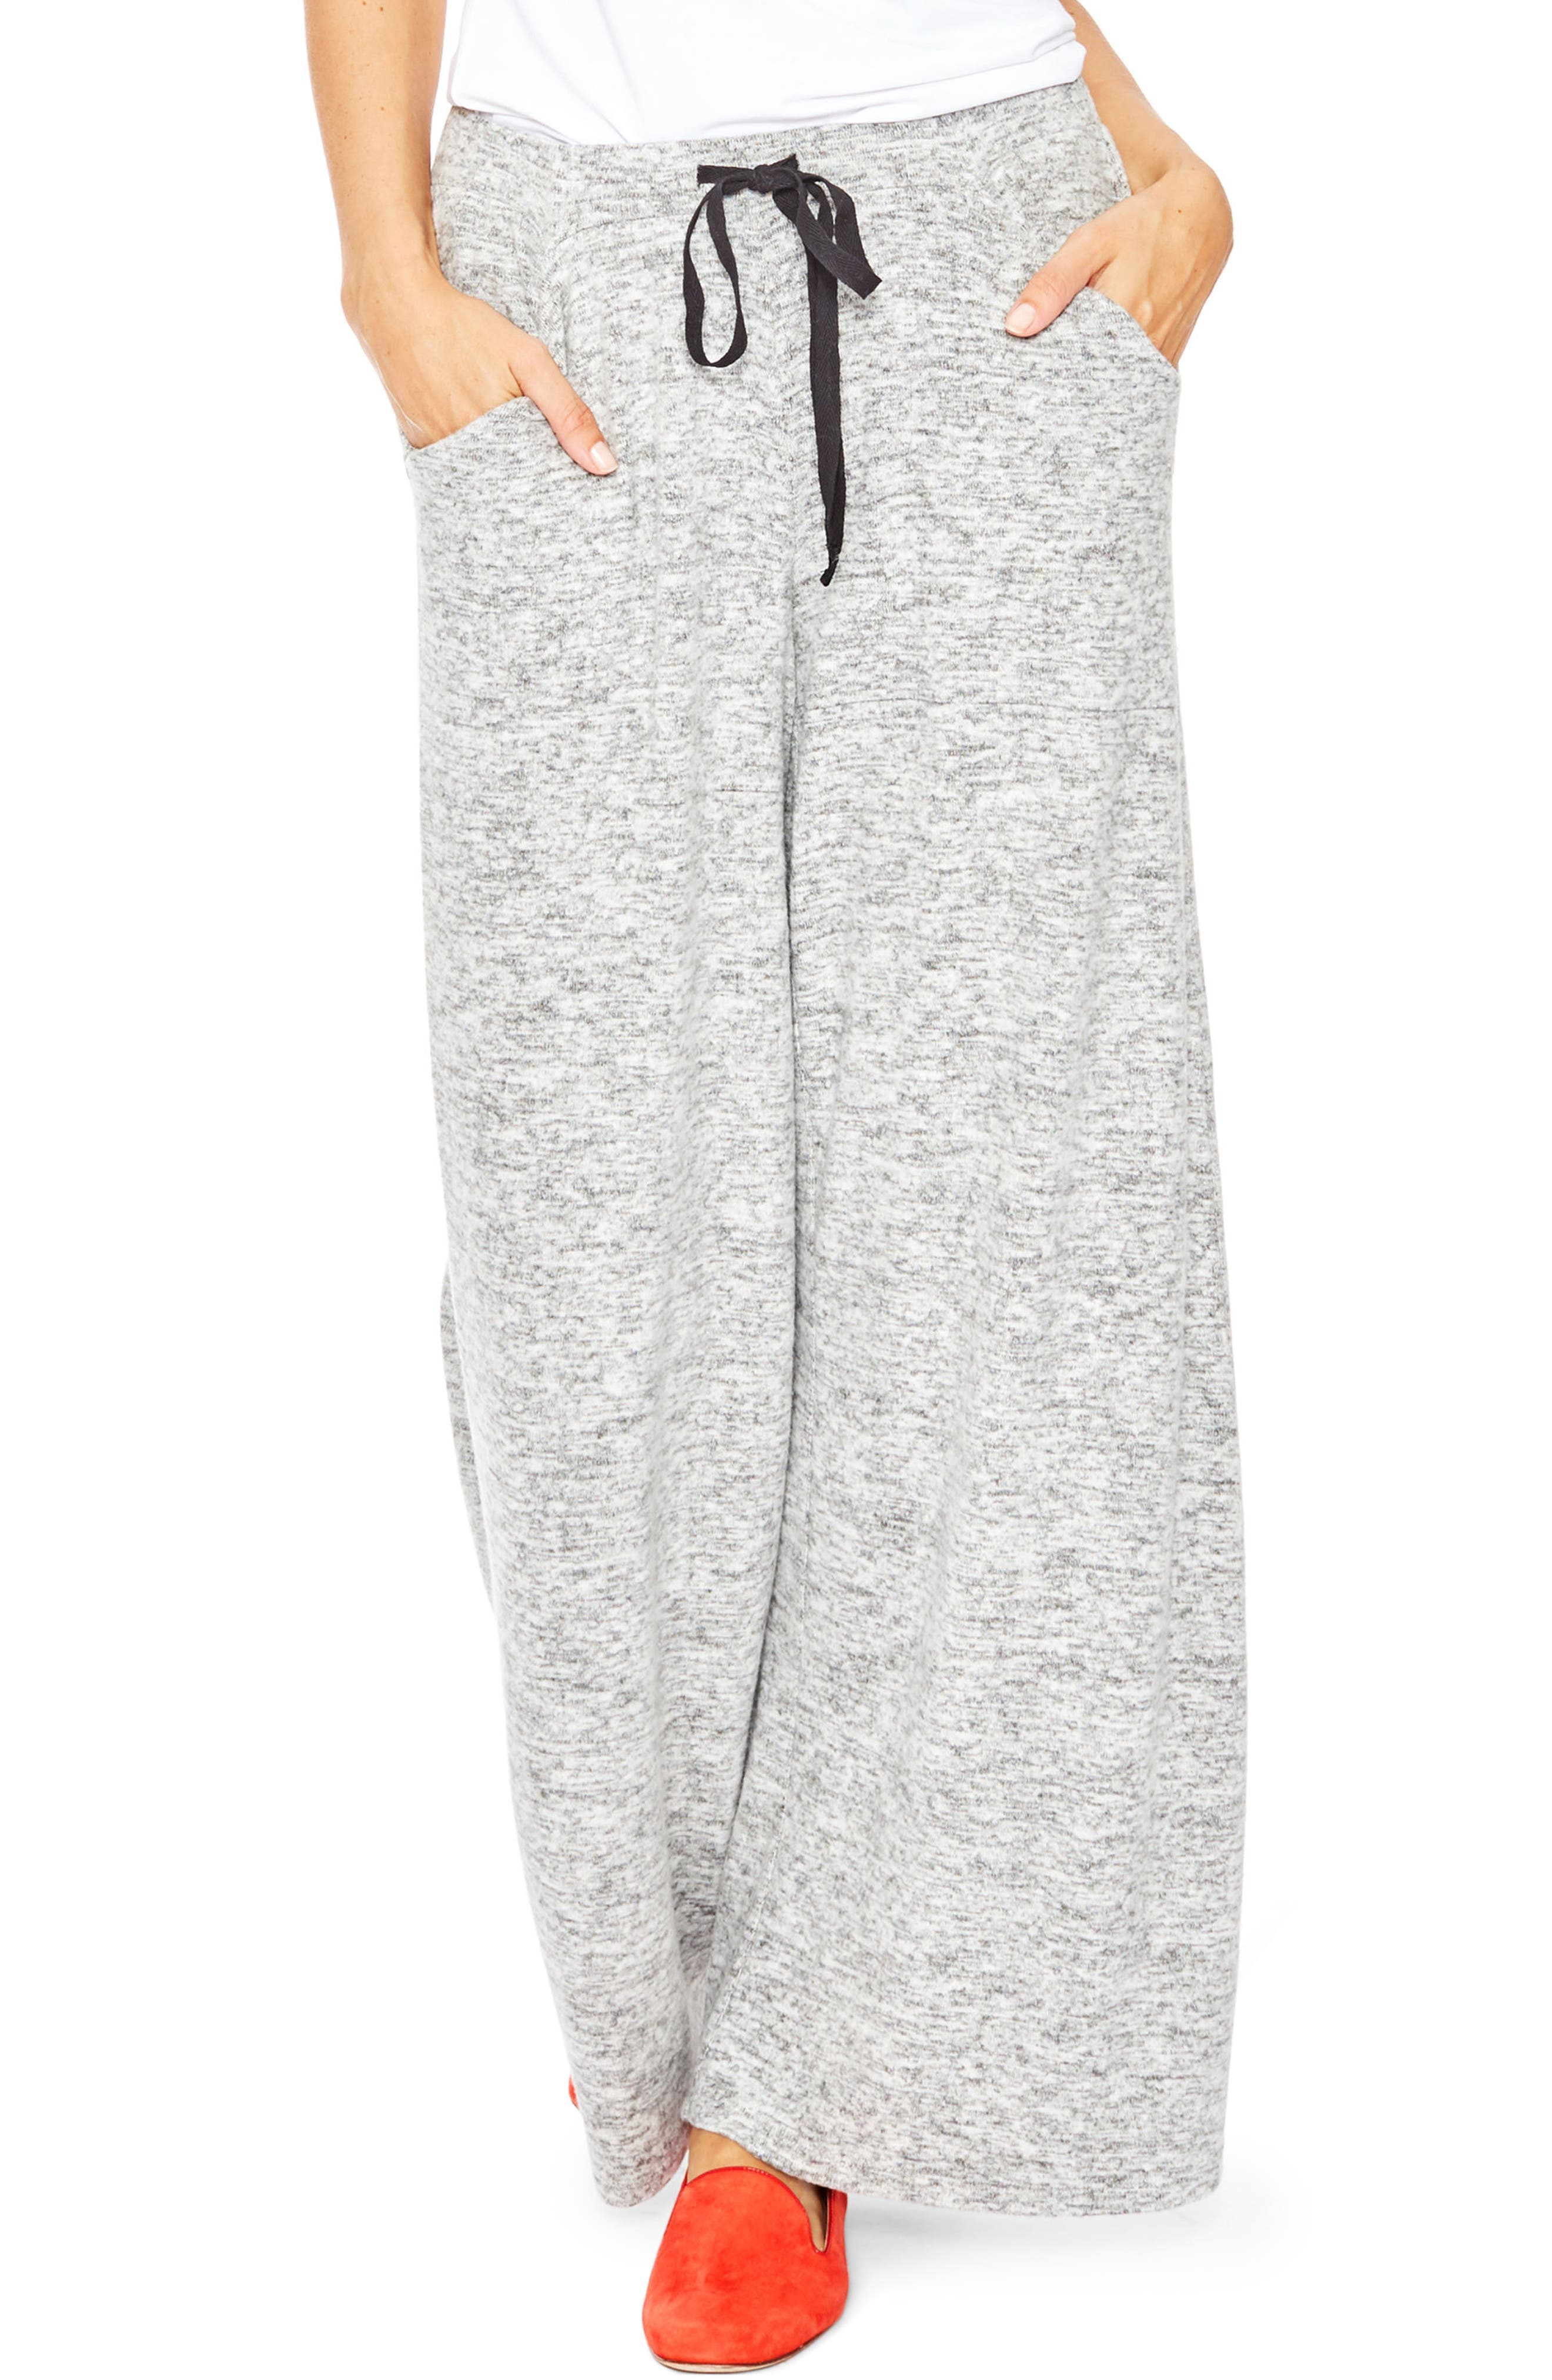 Riley Maternity Sweatpants,                         Main,                         color, GREY MELANGE